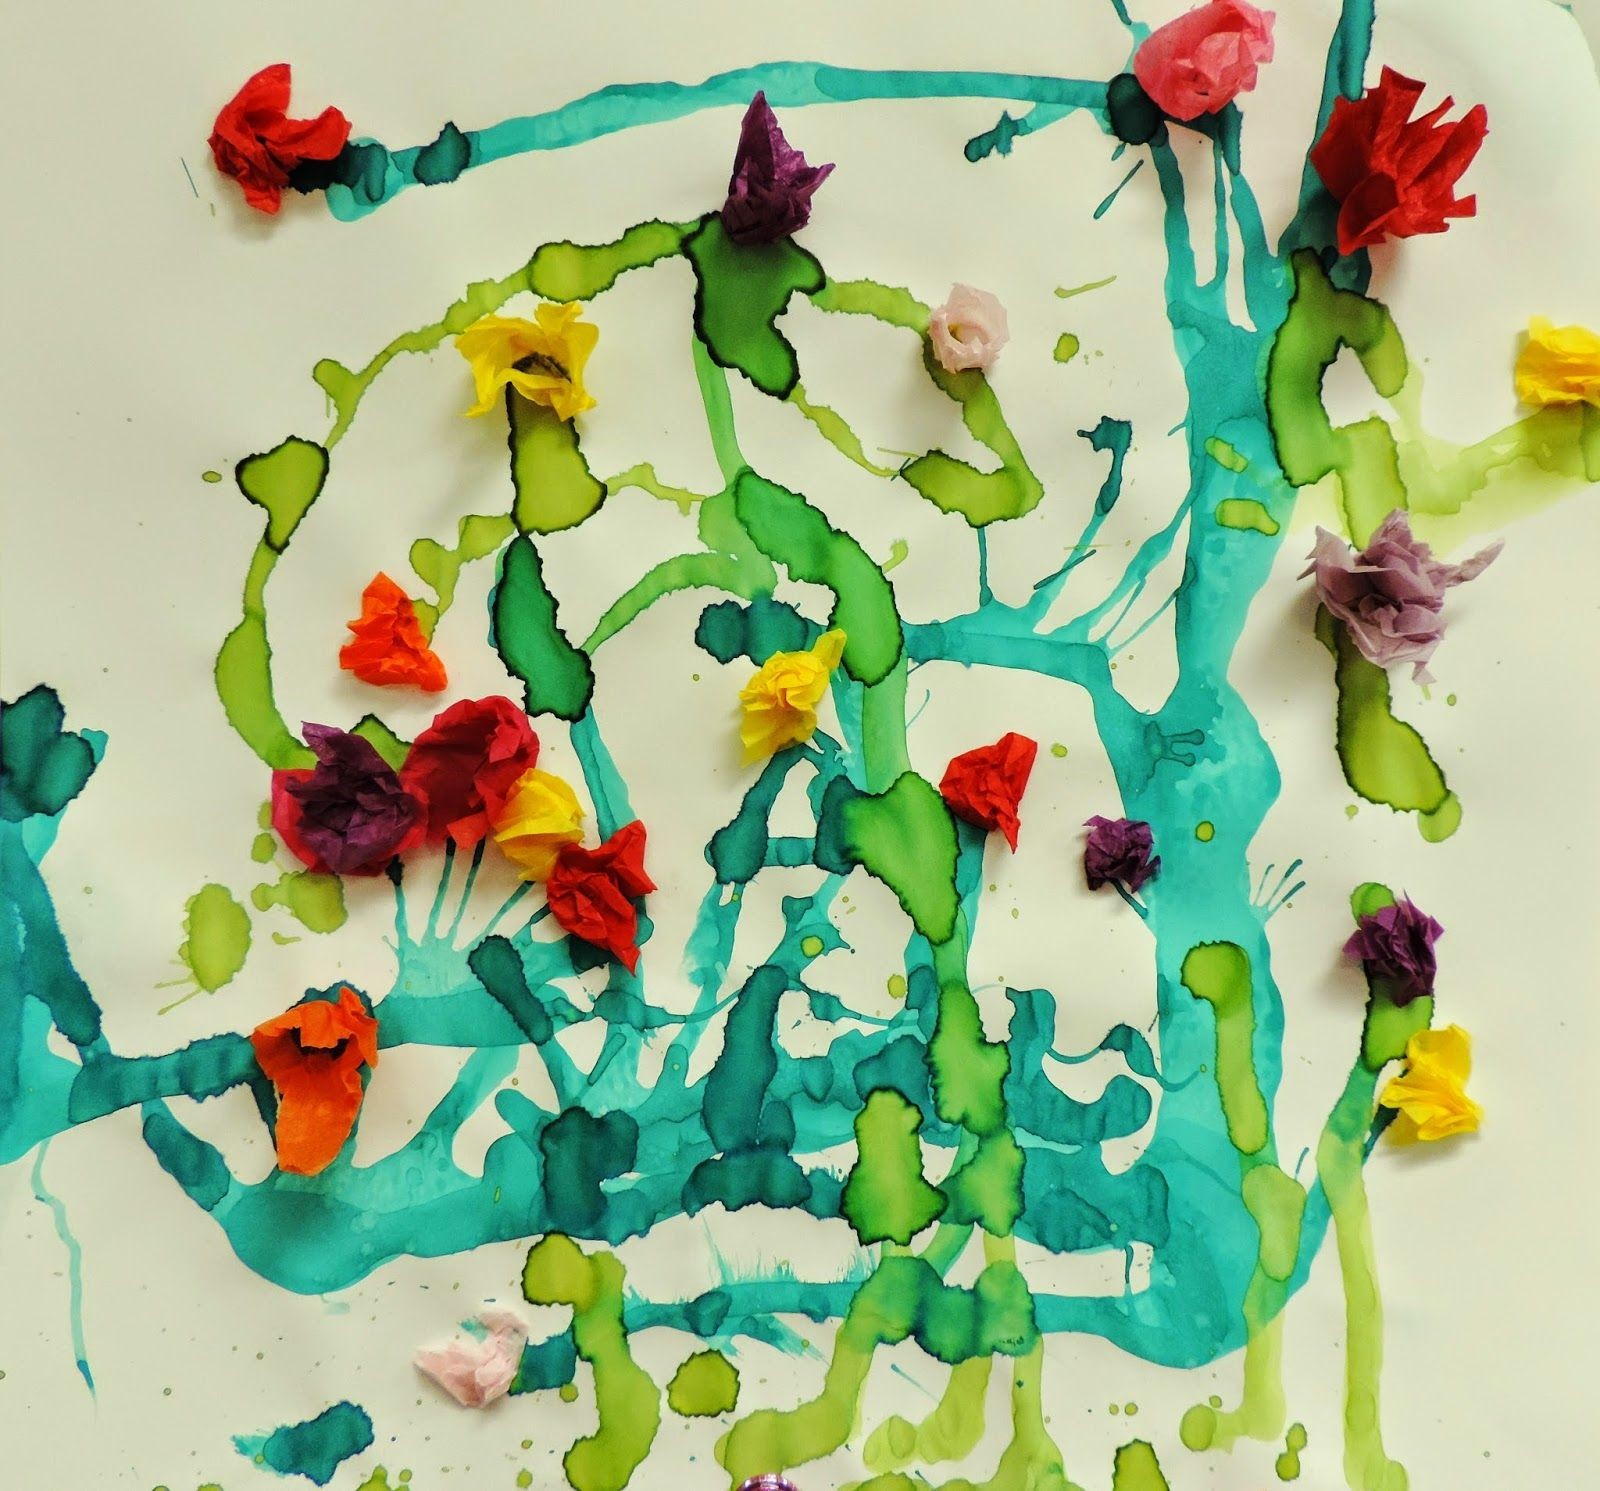 Painting With Wind! Garden Blow Painting With Watercolors And Tissue Paper.